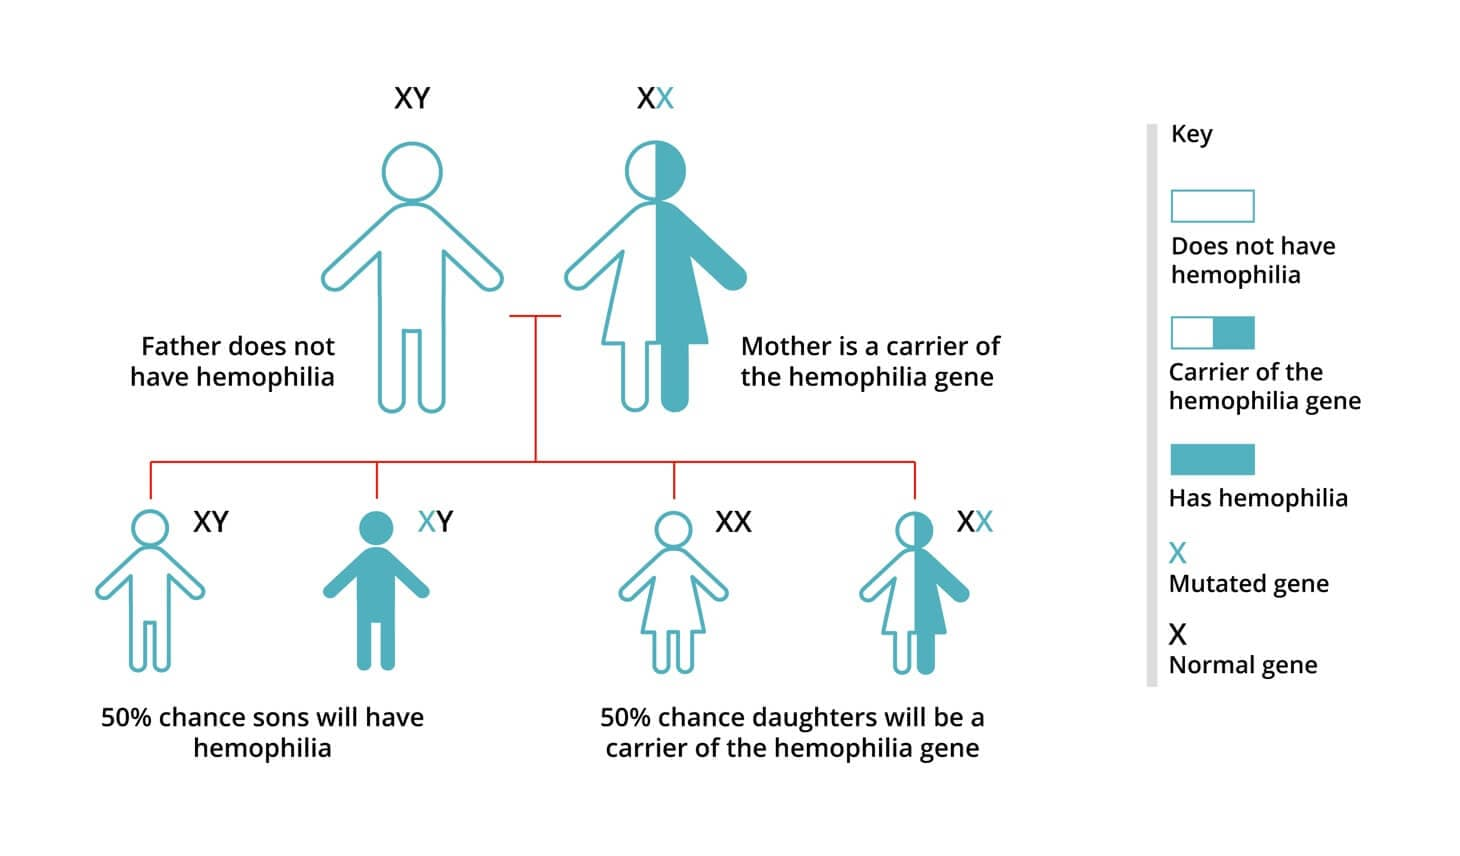 Hemophilia is the result of an inherited genetic mutation.